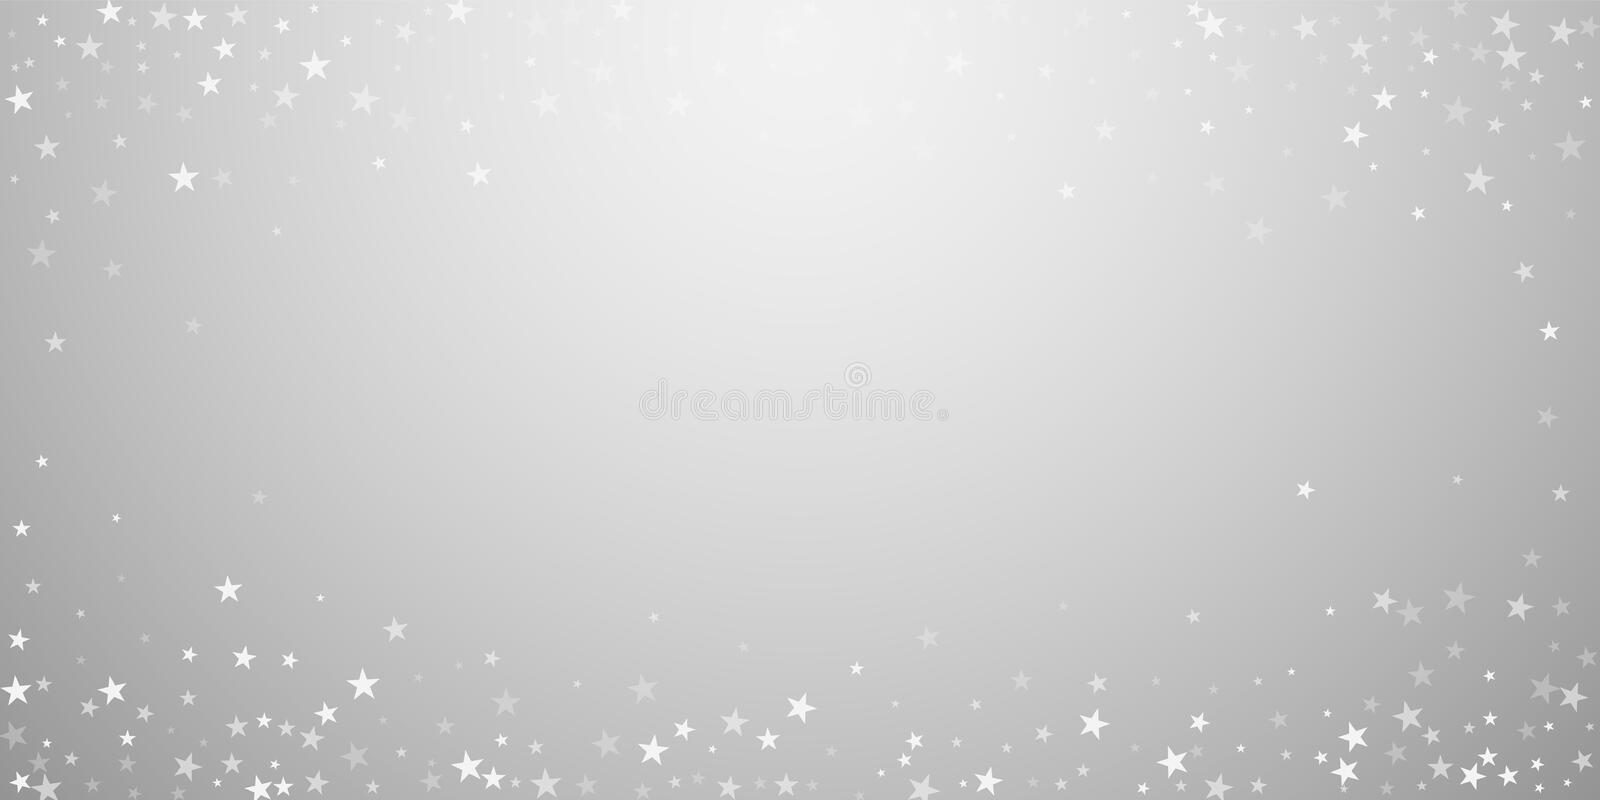 Random falling stars Christmas background. Subtle. Flying snow flakes and stars on light grey background. Bewitching winter silver snowflake overlay template stock illustration